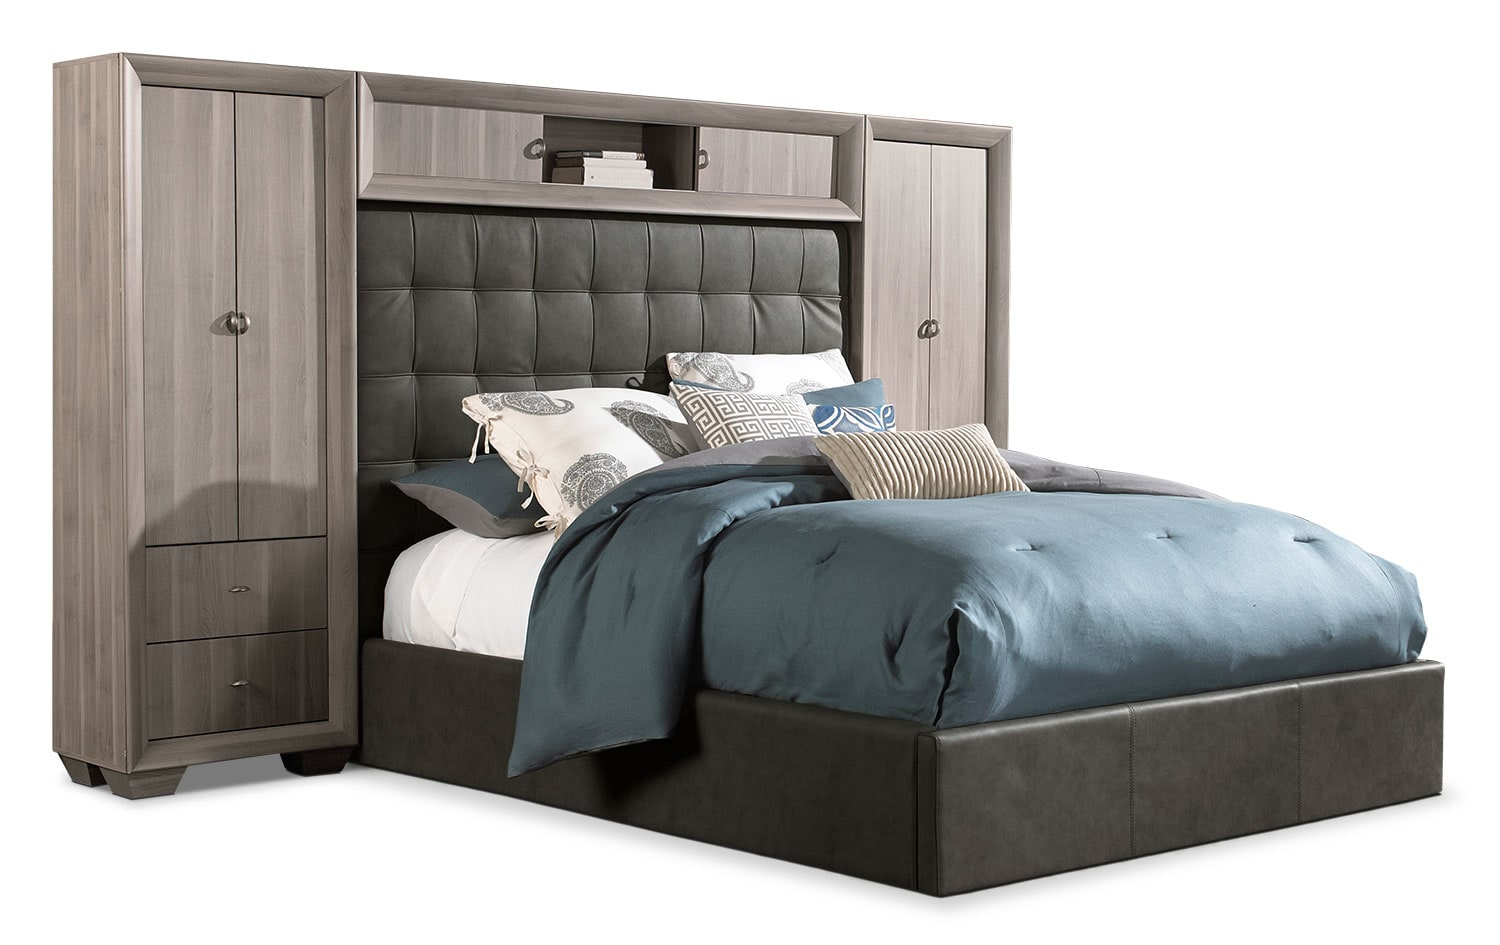 Bedroom Furniture - Franklin 5-Piece King Wallbed - Taupe